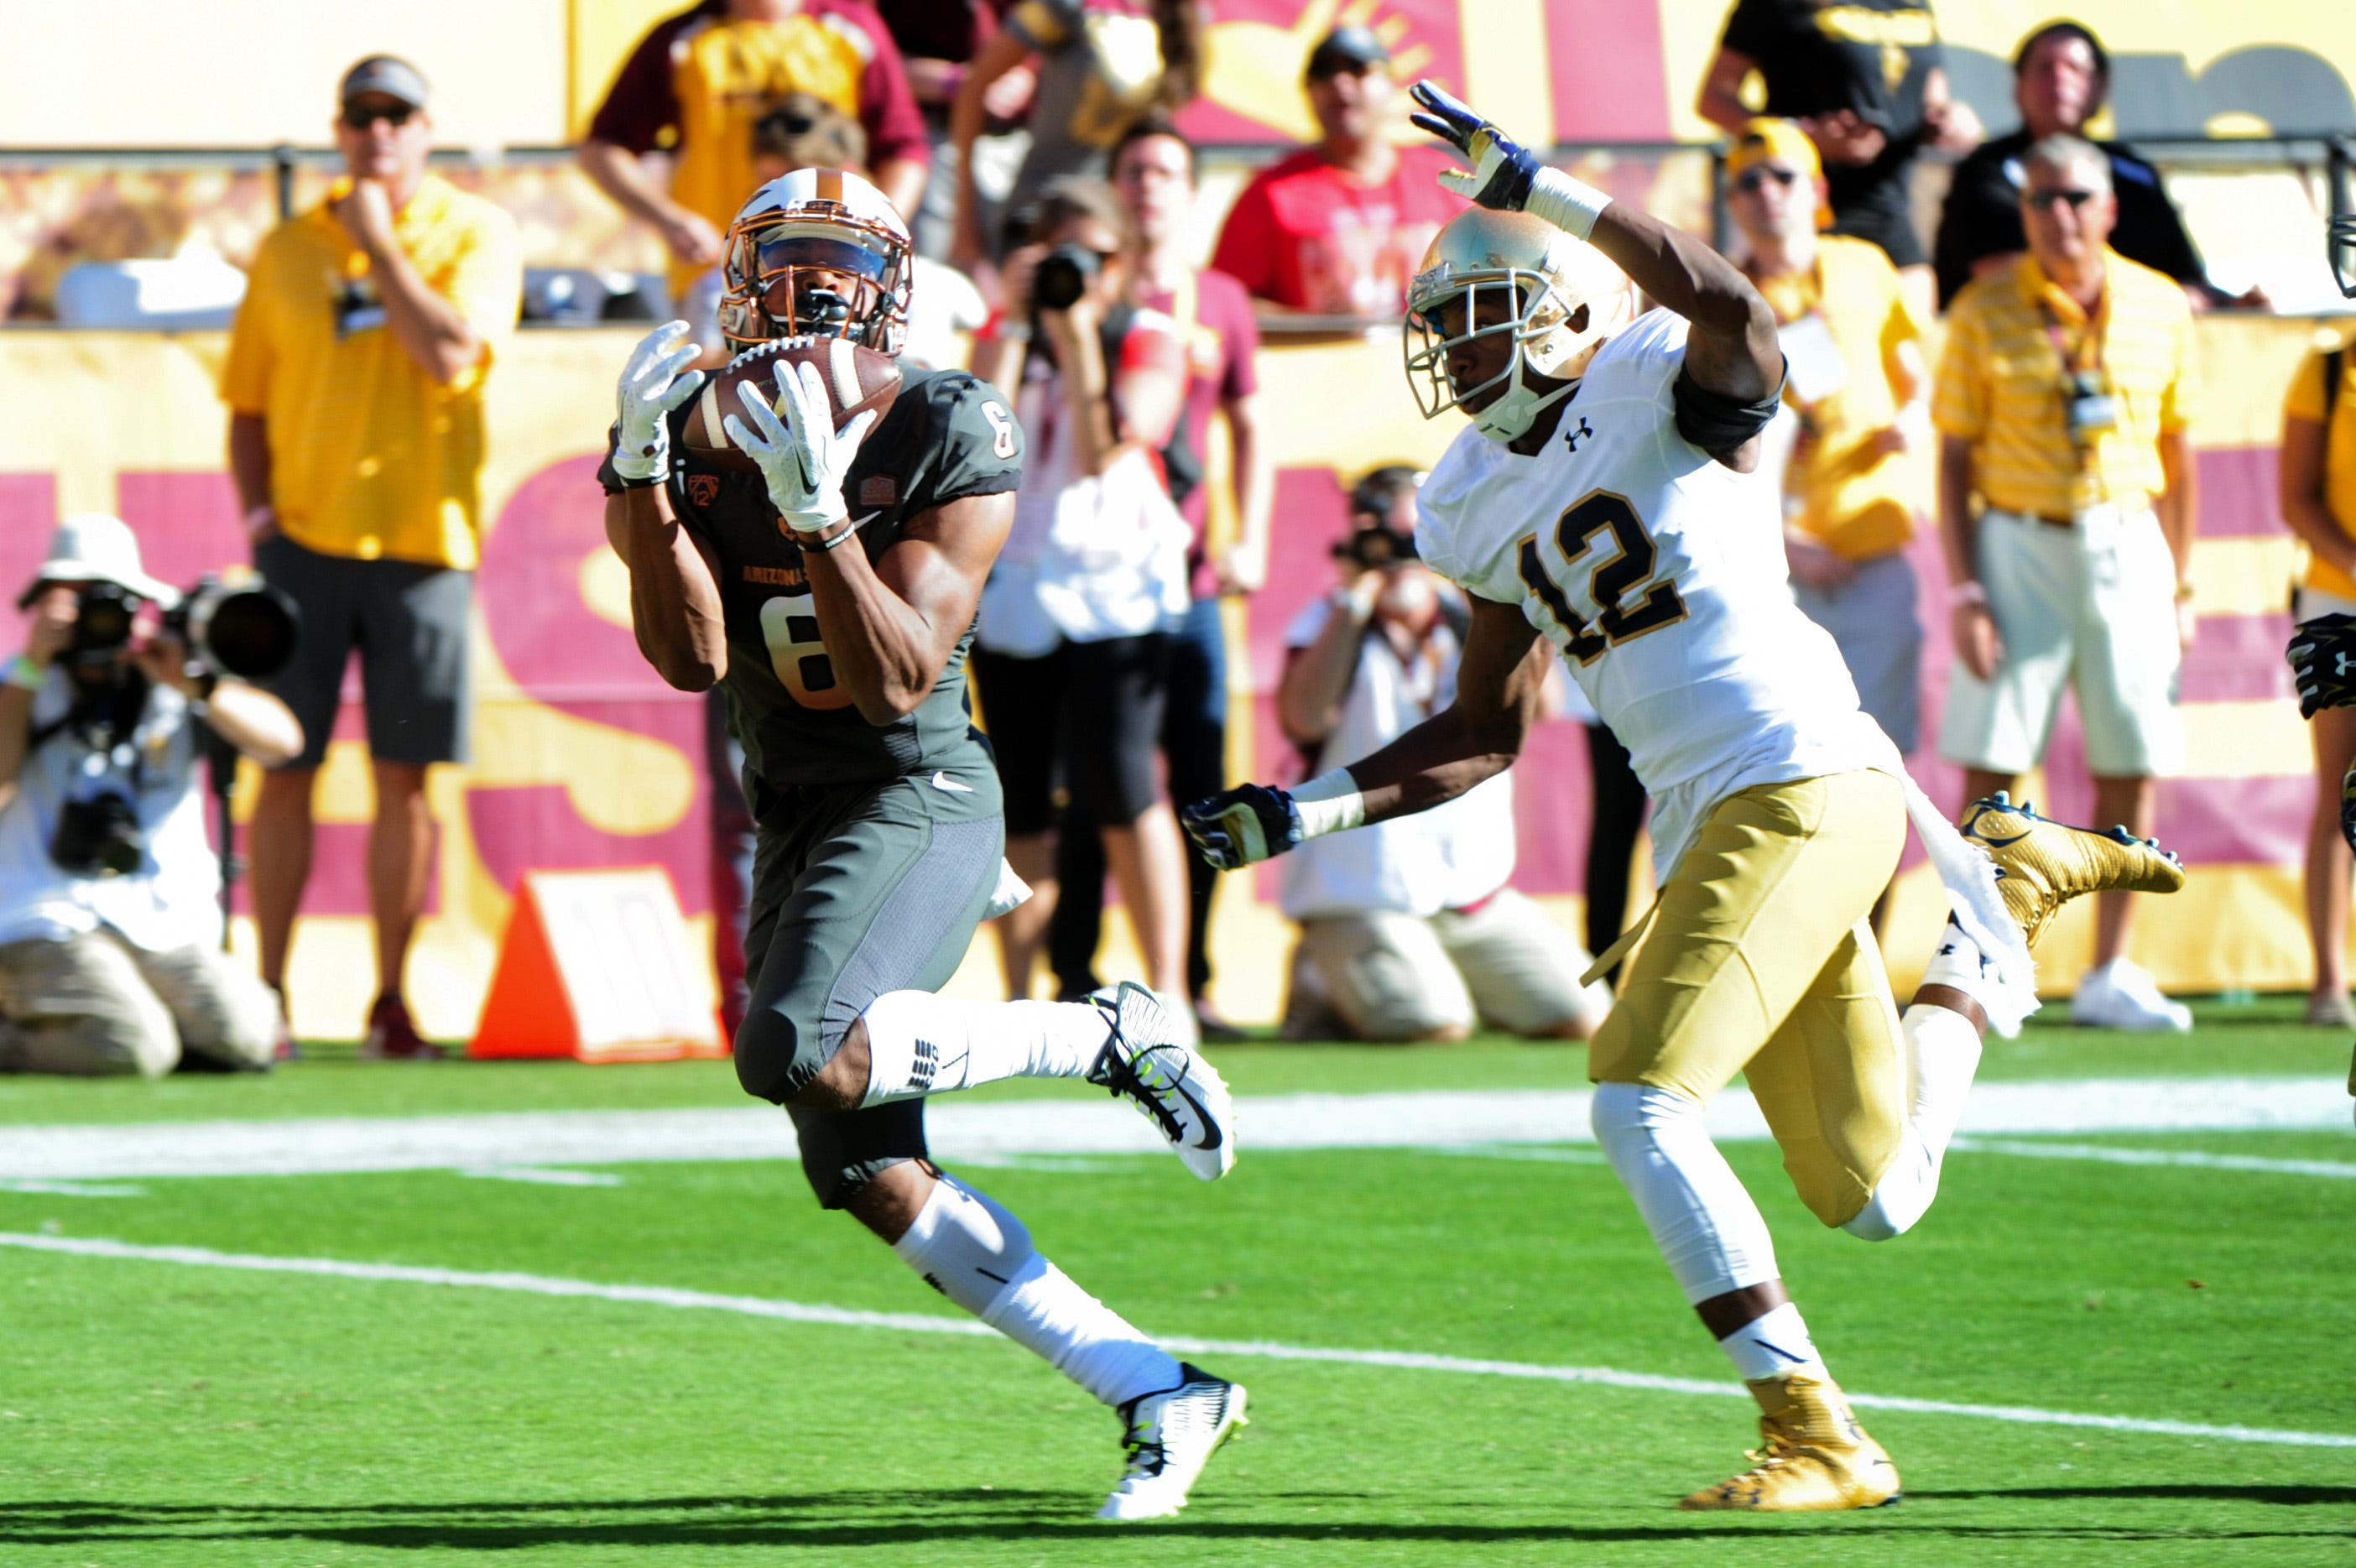 ASU wide receiver Cameron Smith departs for Notre Dame as graduate transfer